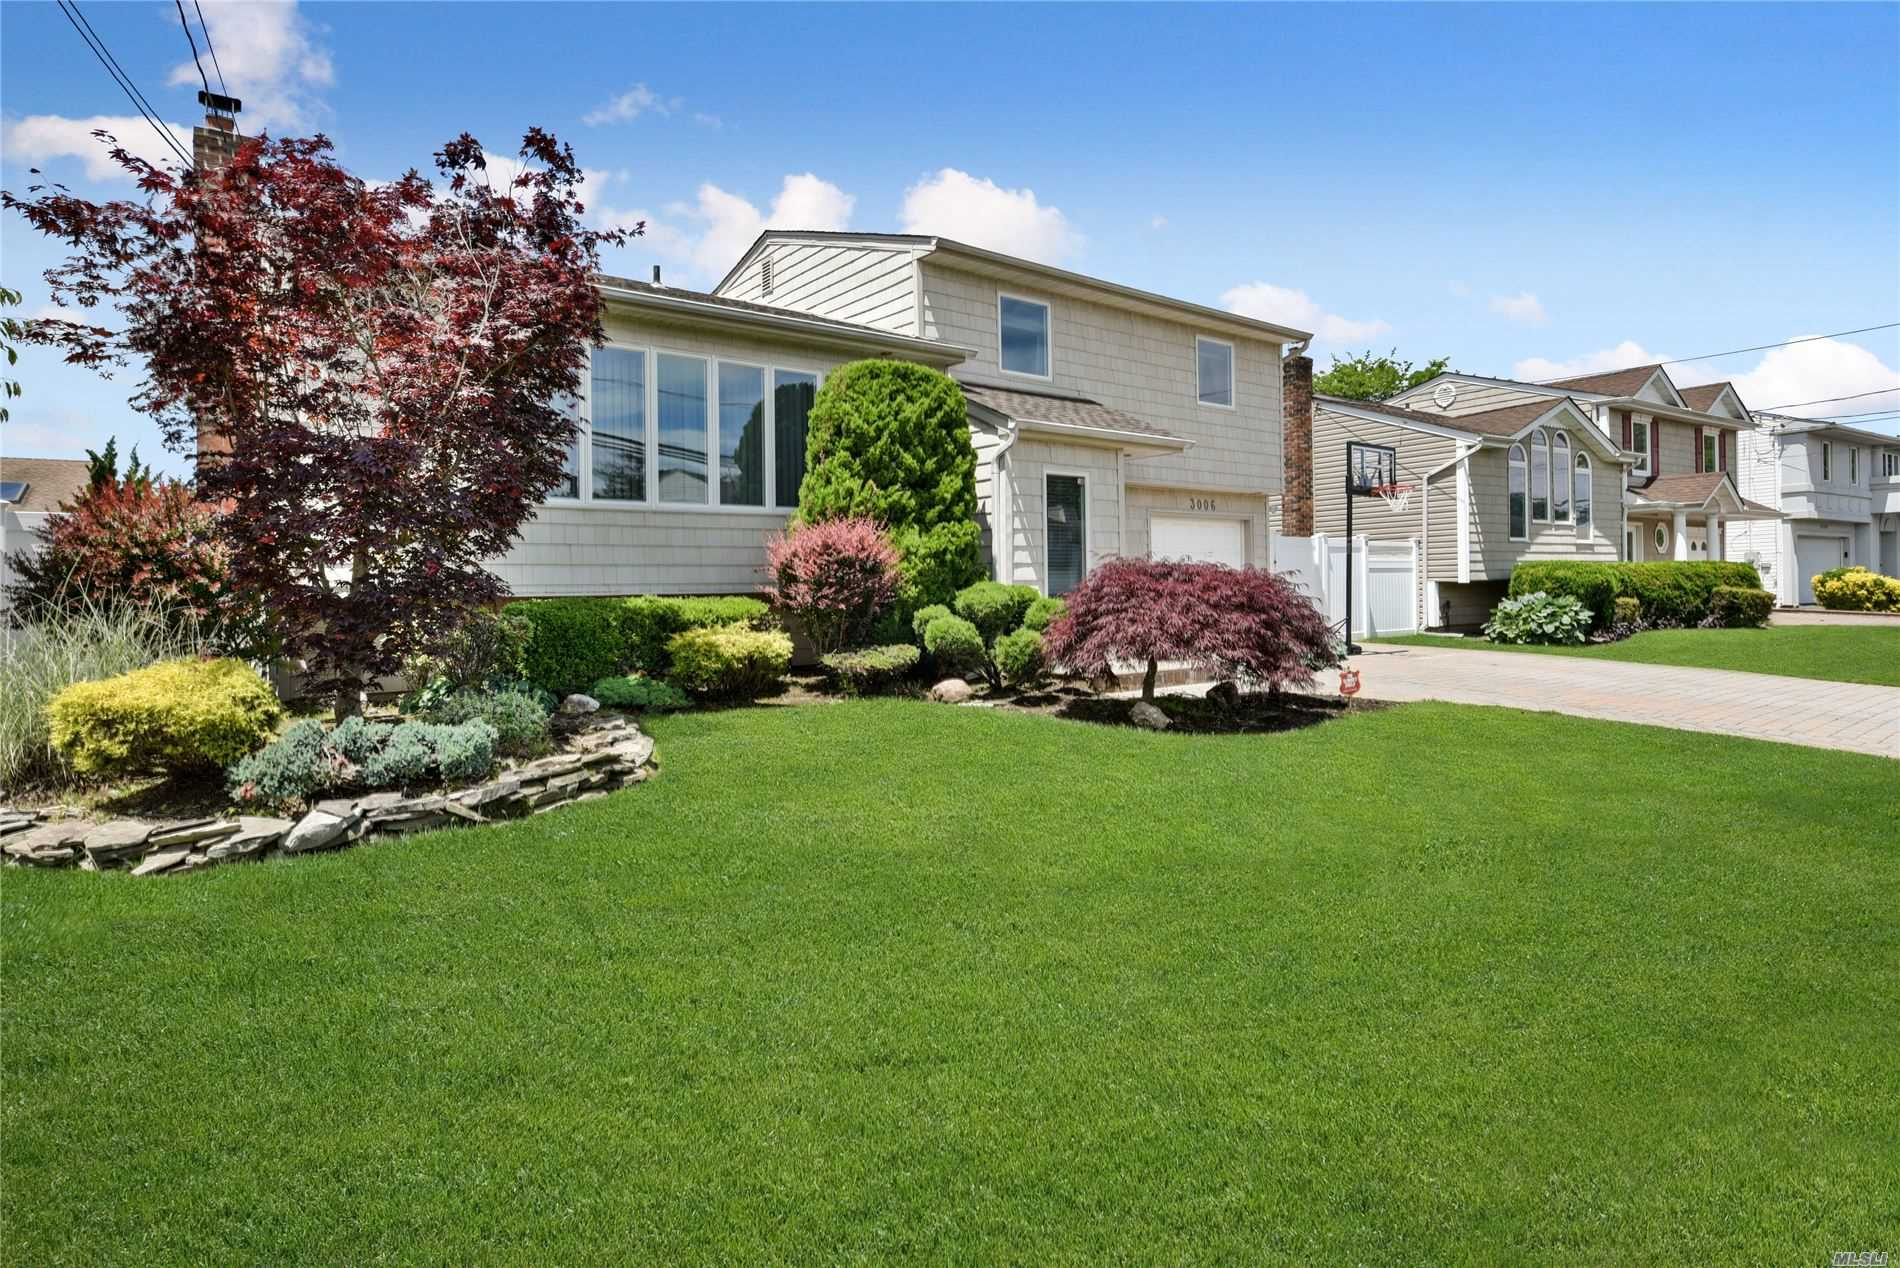 Open Floor Plan, Spacious, Immaculate, Spectacular, Sprawling Splanch On One Of South Bellmore's Most Desirable Blocks. Magnificent Expanded Foyer & Open Floor Plan Concept Is Ideal For Entertaining W/ Endless Countertops, Ss Appls & Island. This Home Offers 4 Bdrms With Additional 5th Bdrm/Office/Playroom On First Floor. Quiet Midblock Location With Serene Backyard Includes Crown Molding In Bedrooms, Updated Master Bath, Storage Galore, Cac, Alarm, Brand New Roof, Pvc Fencing And So Much More.